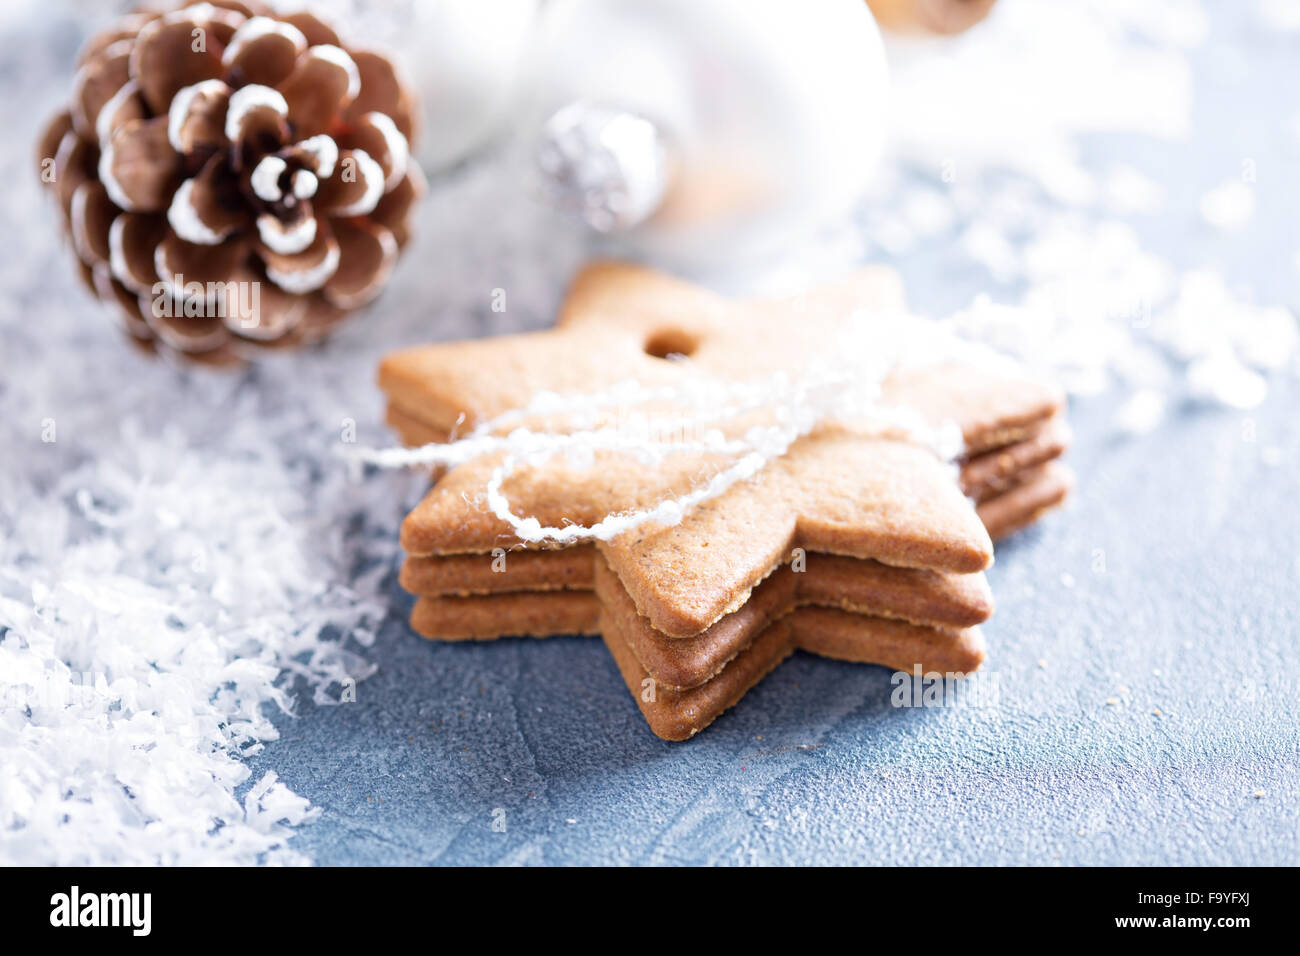 Christmas ornaments and gingerbread cookies with snow - Stock Image